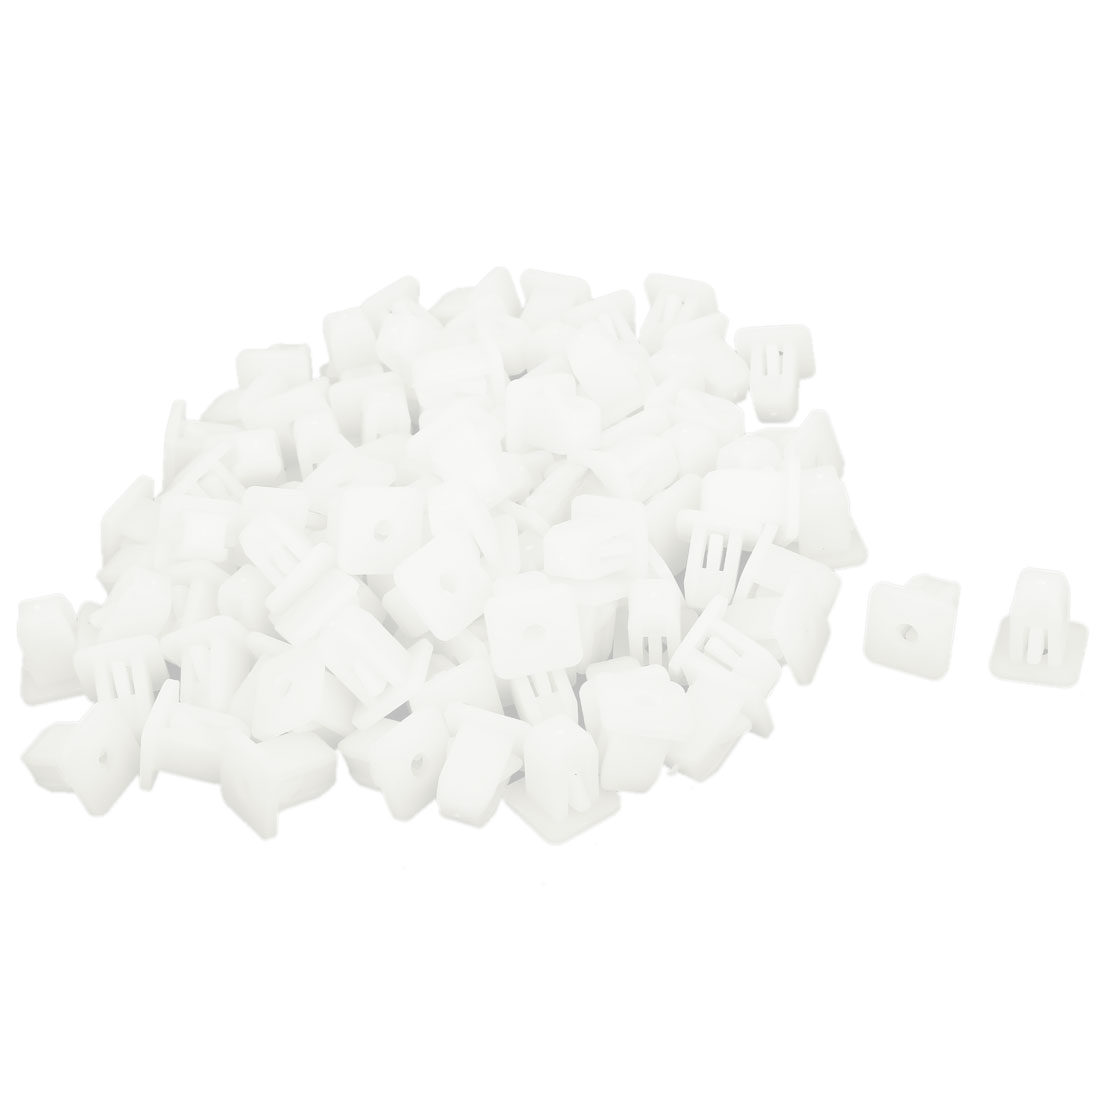 100 Pcs White Plastic Rivet Trim Fastener Moulding Clips 4mm x 13mm x 14mm